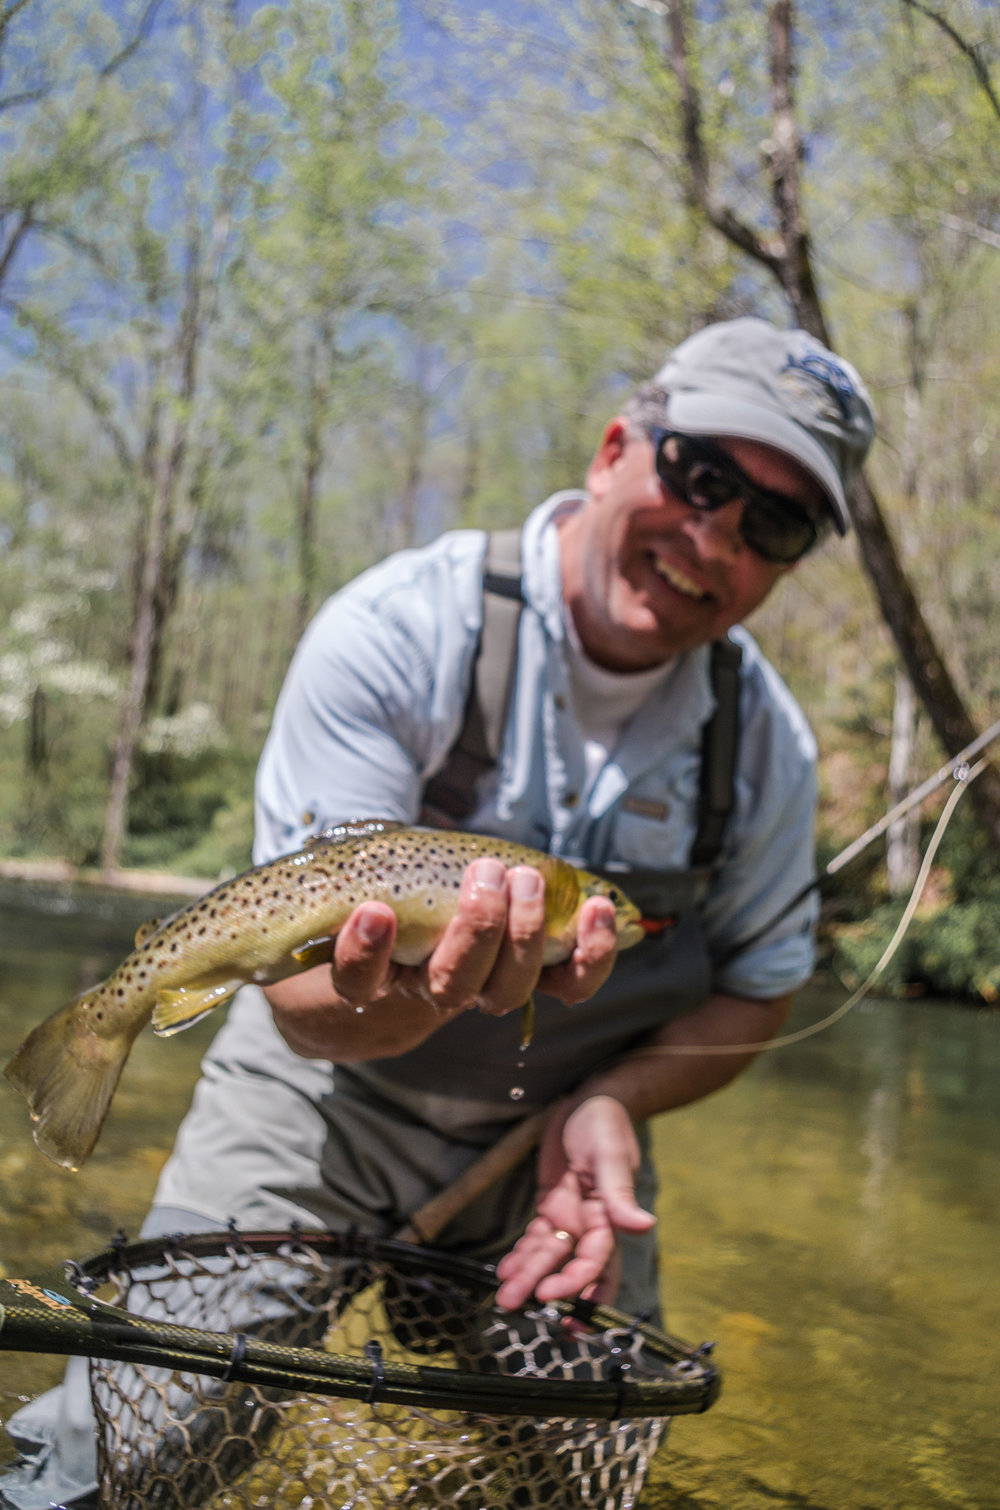 Brown Trout from The Davidson River